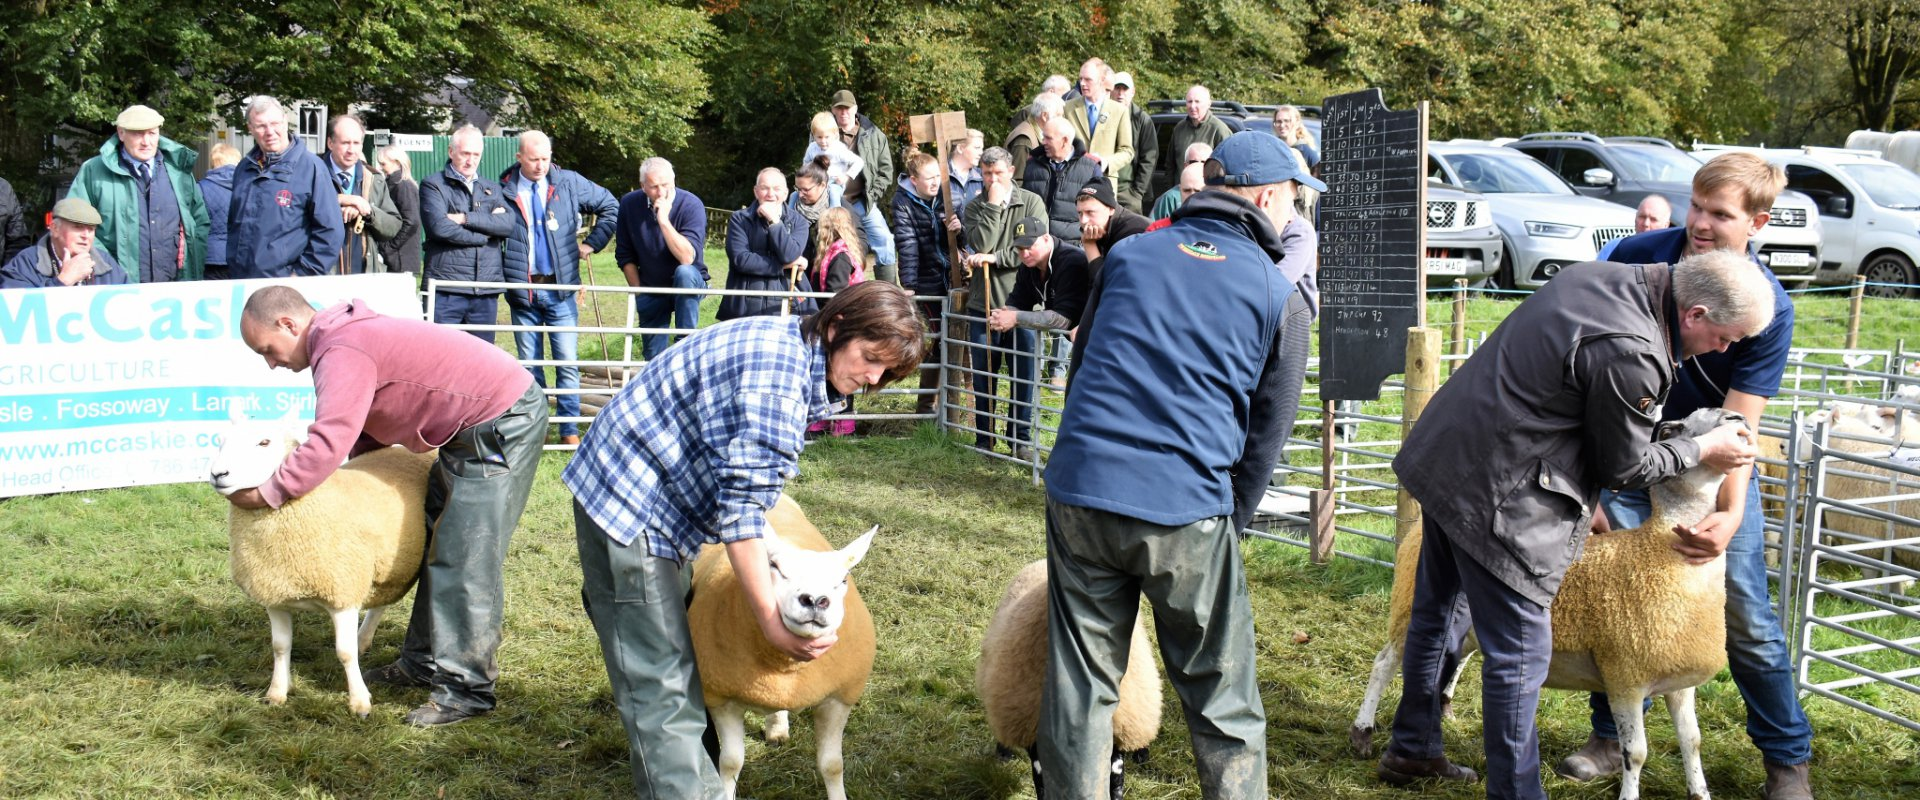 Inter Sheep Judging